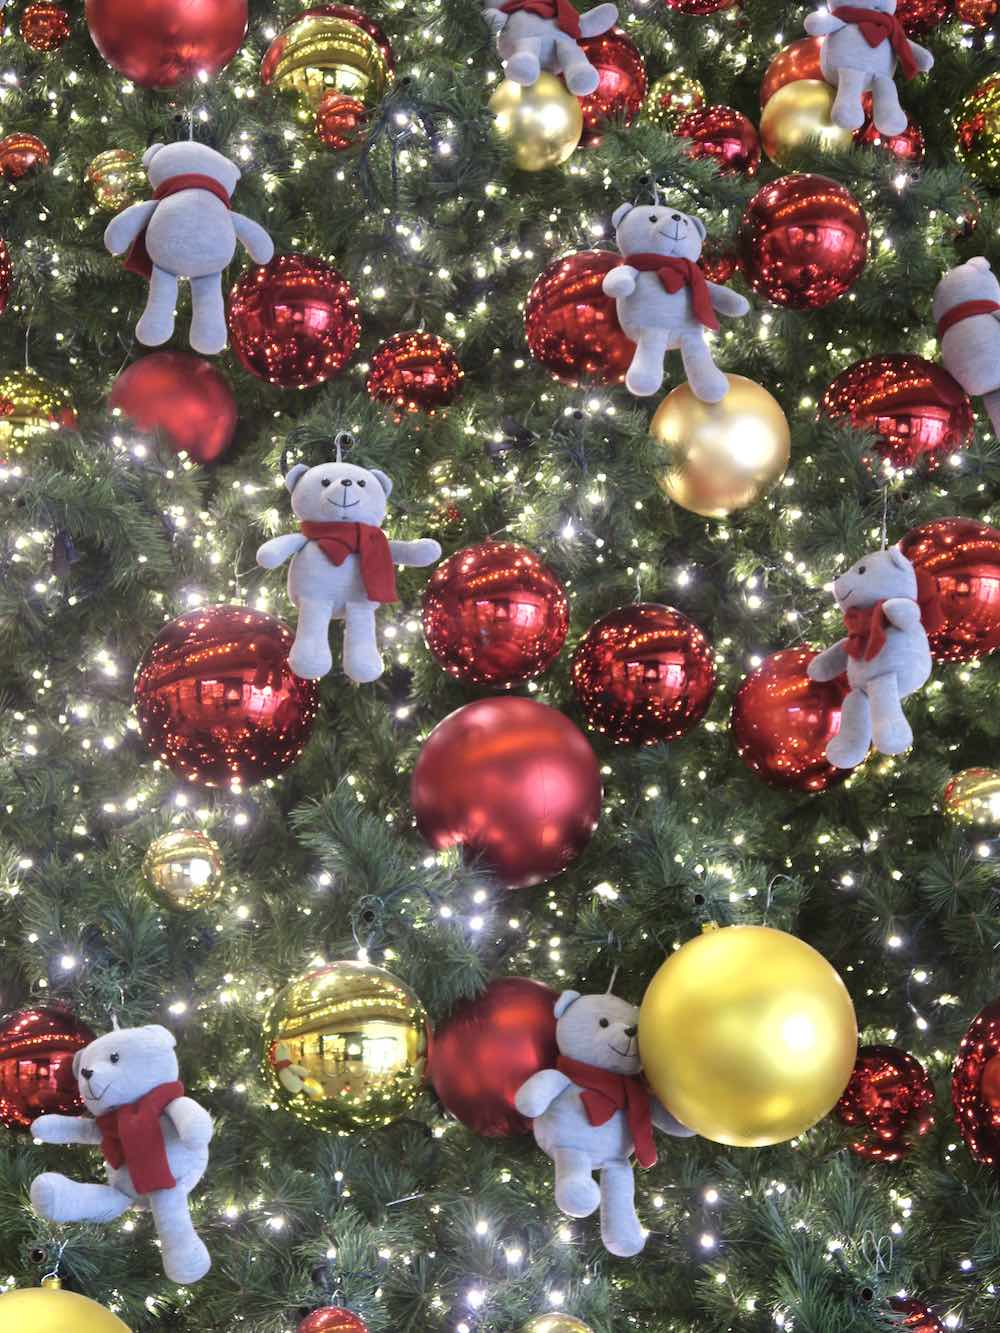 Toy bears in christmas tree in Takashimaya |curlytraveller.com